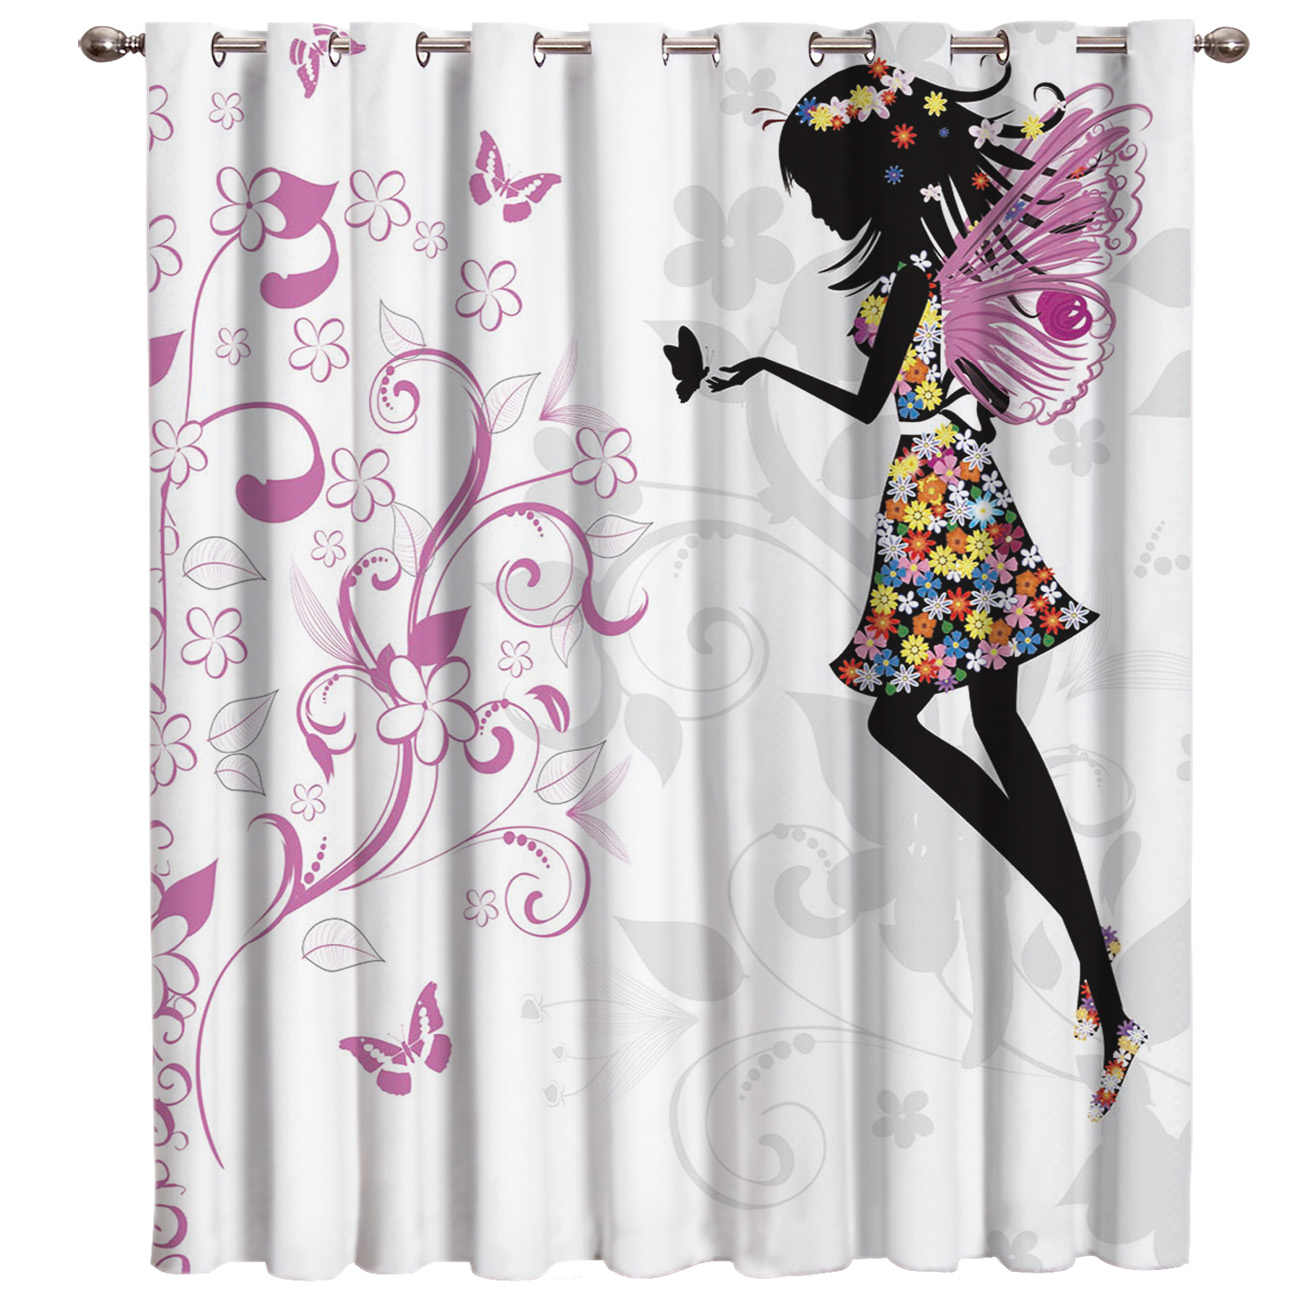 Flower and Girl Window Curtains Dark Living Room Blackout Outdoor Kitchen Fabric Decor Kids Window Treatment Hardware Sets